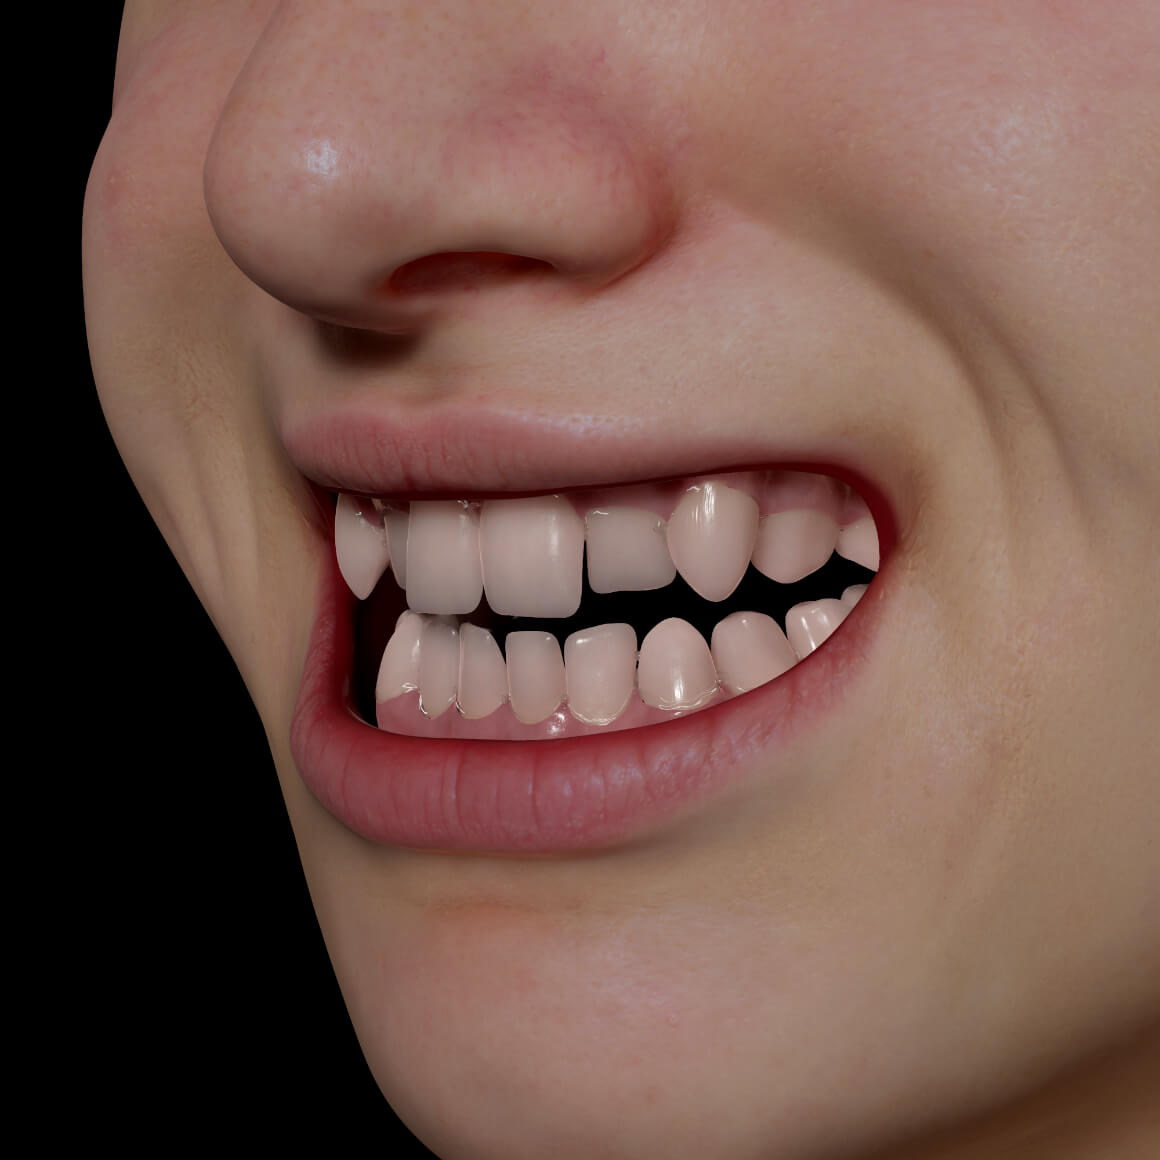 Smile of a Clinique Chloé patient positioned at an angle showing crooked and misaligned teeth